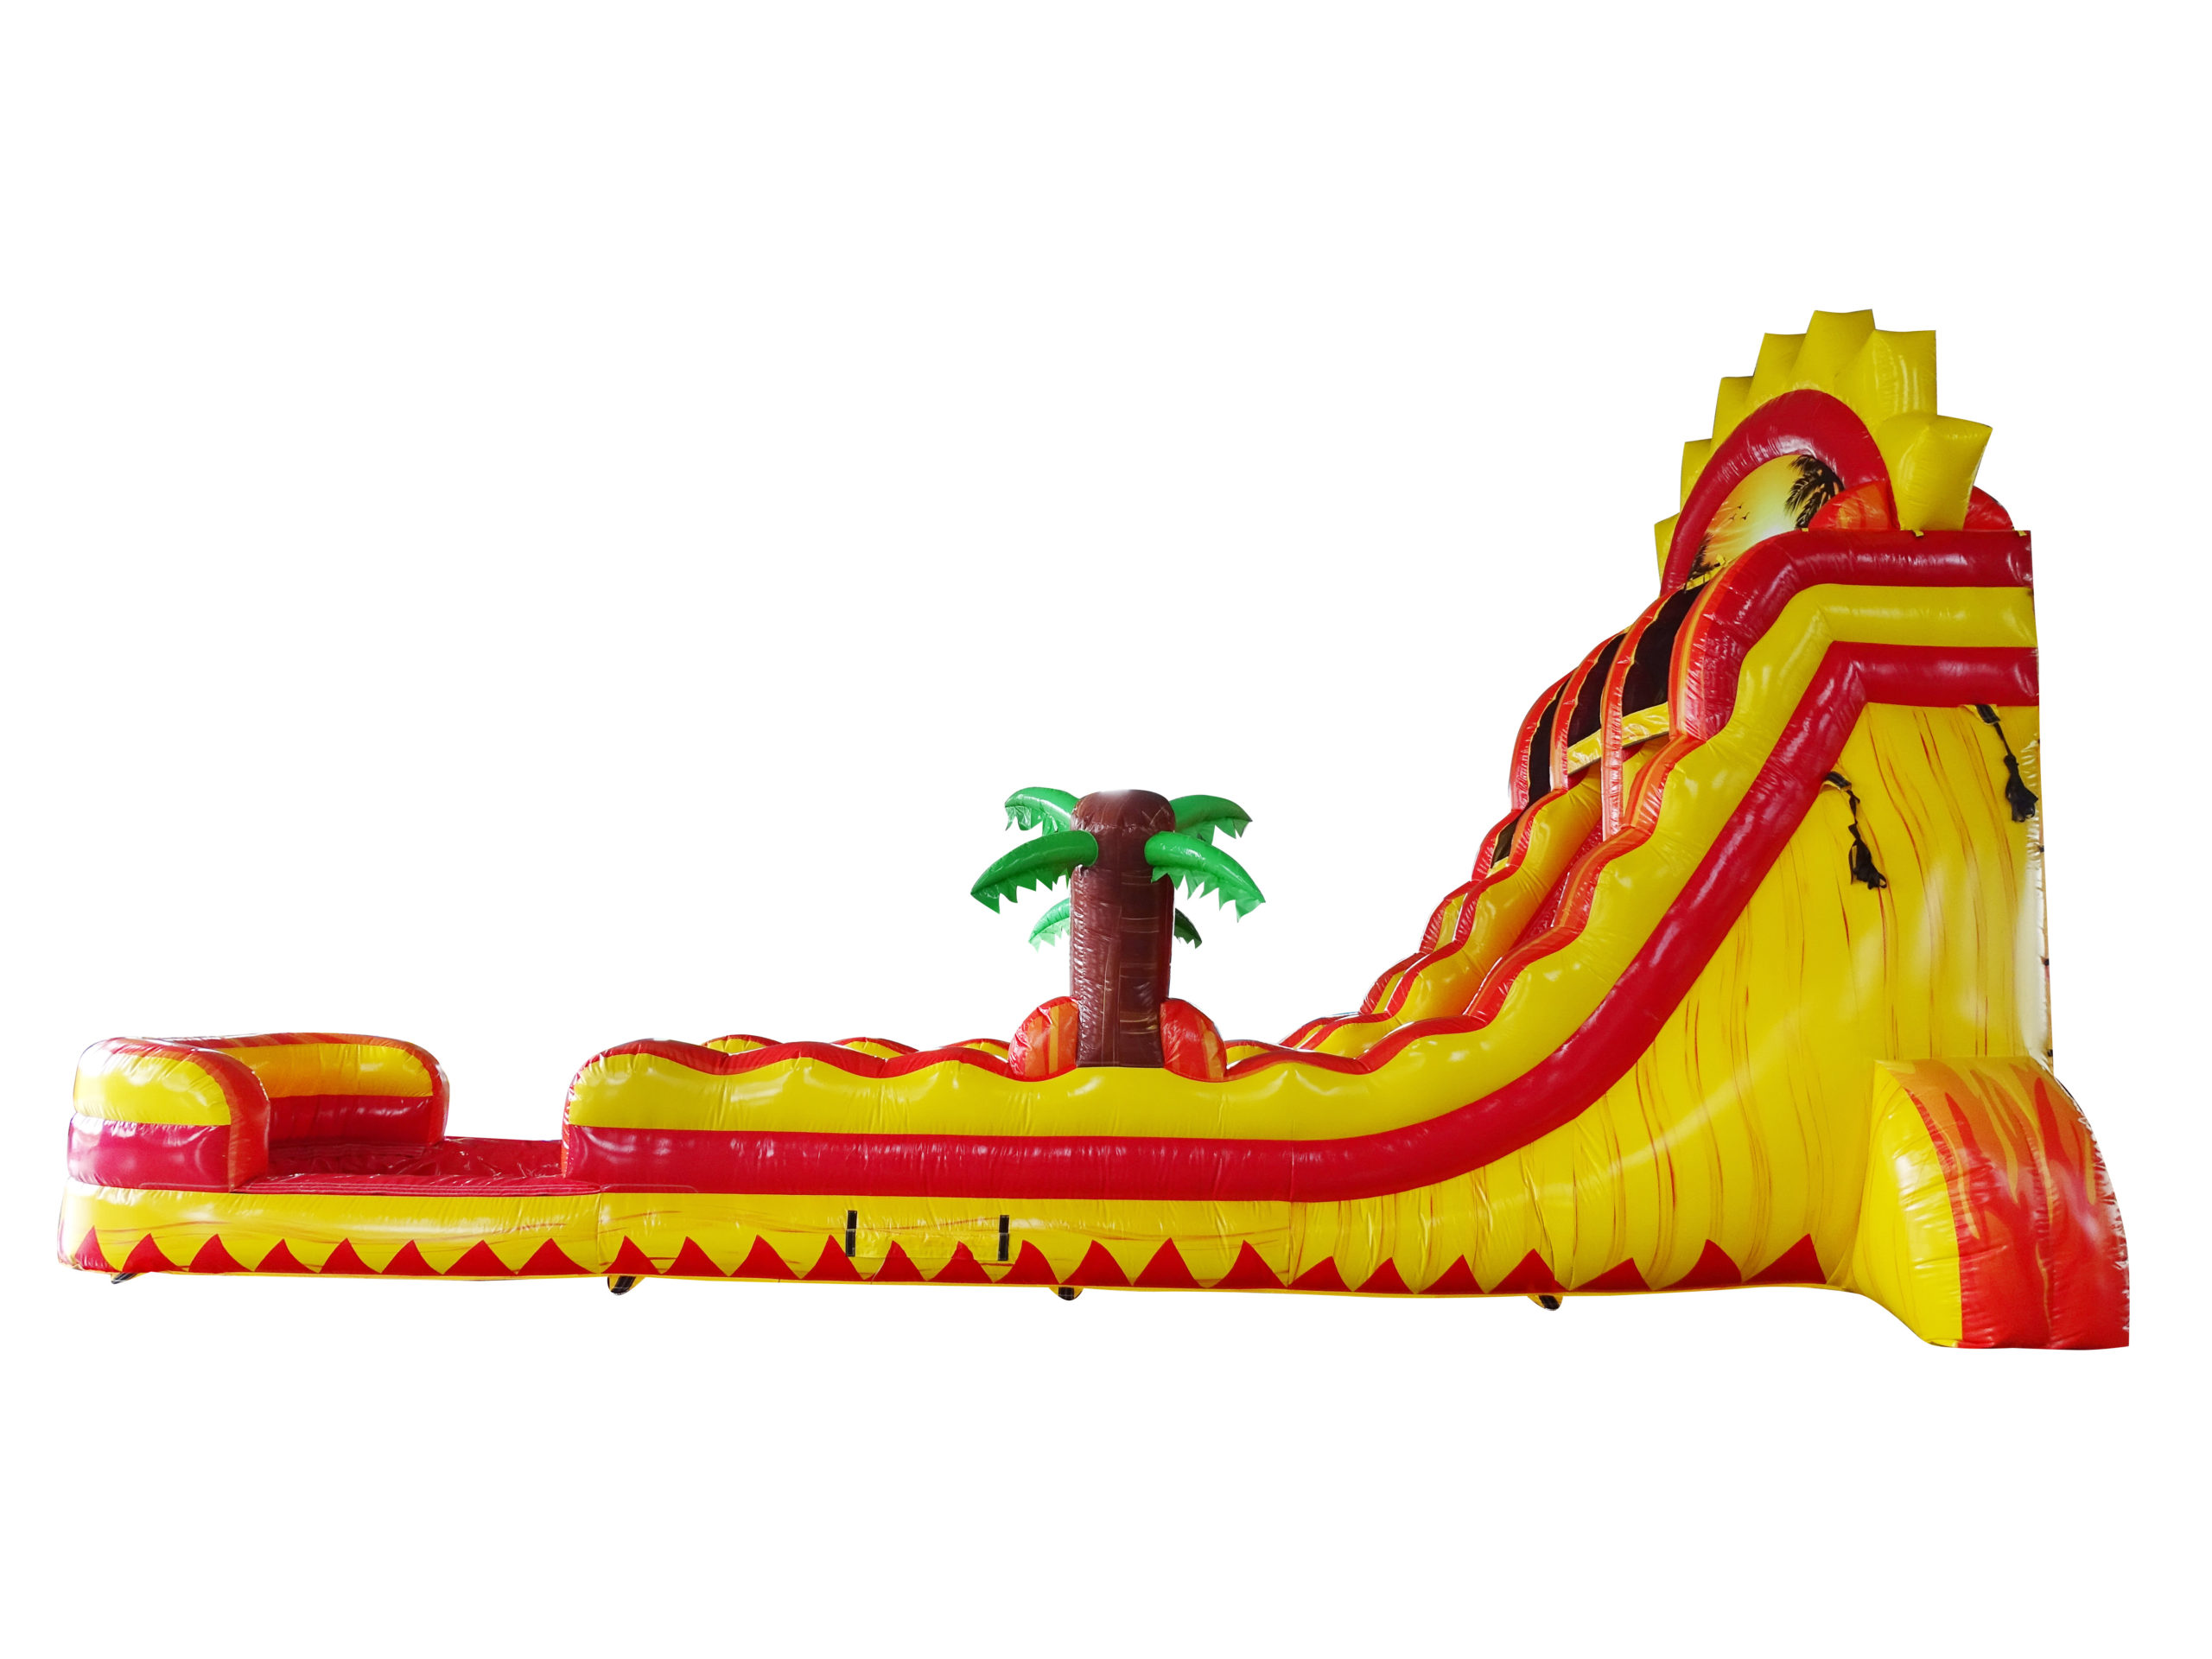 19ft-Summer-Sizzler-2-2-scaled